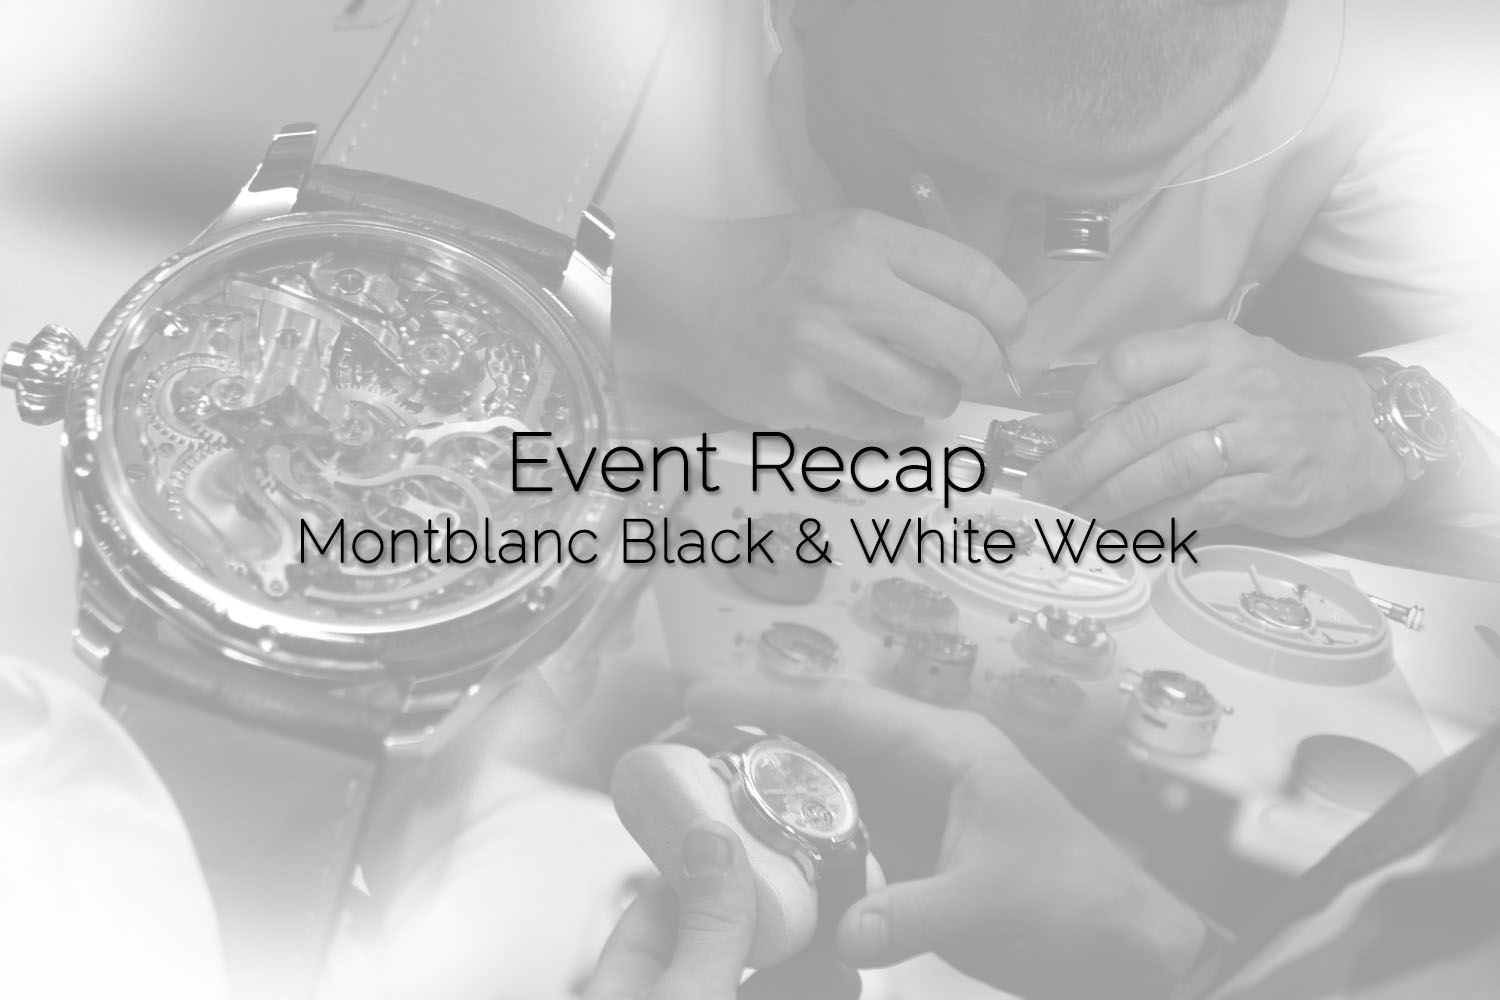 Event Recap - Montblanc Black and White Week